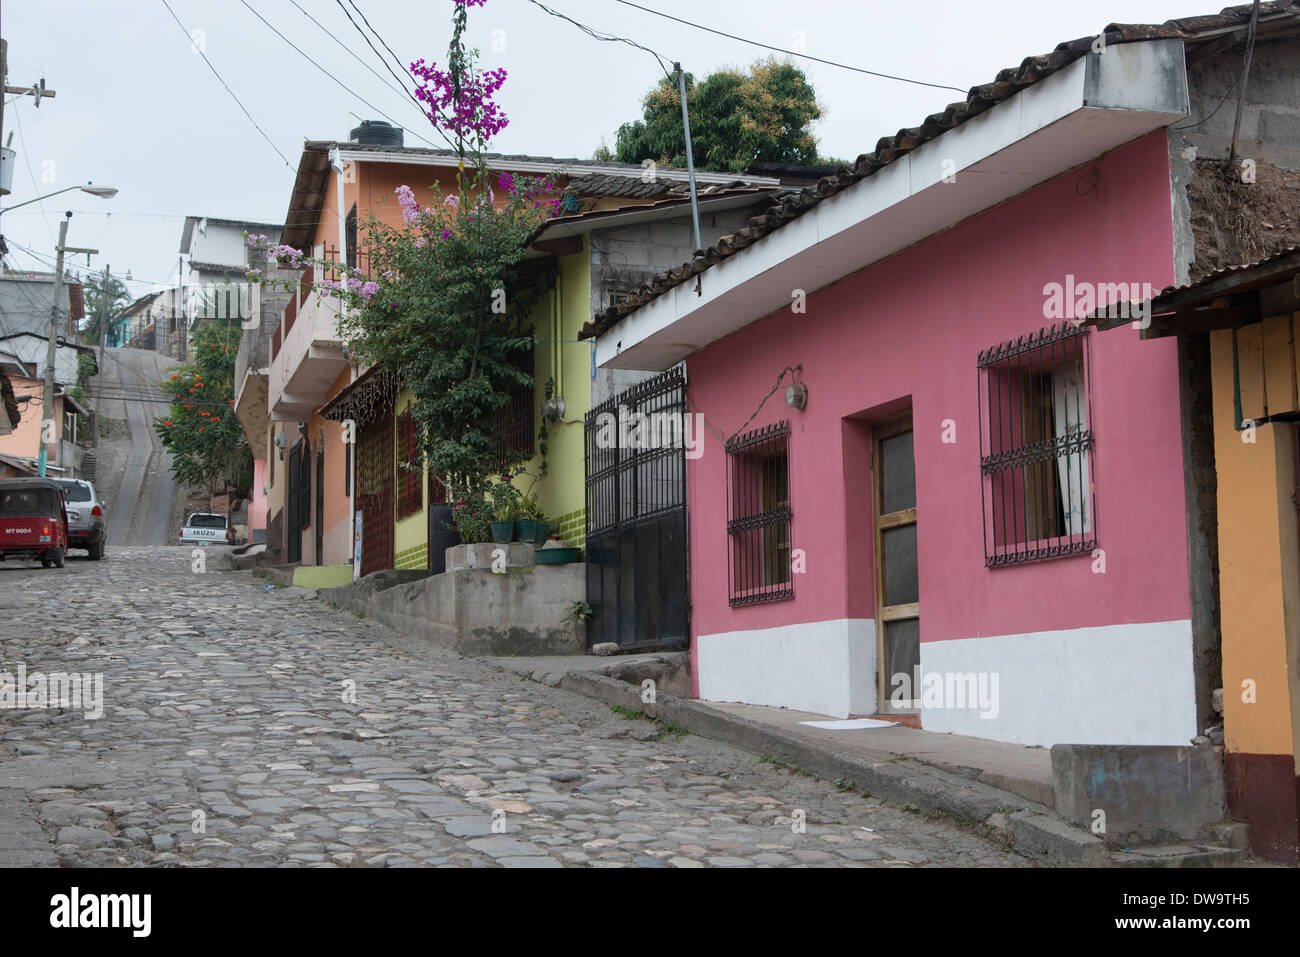 Houses along the street Barrio El Centro Copan Copan Ruinas Honduras Stock Photo